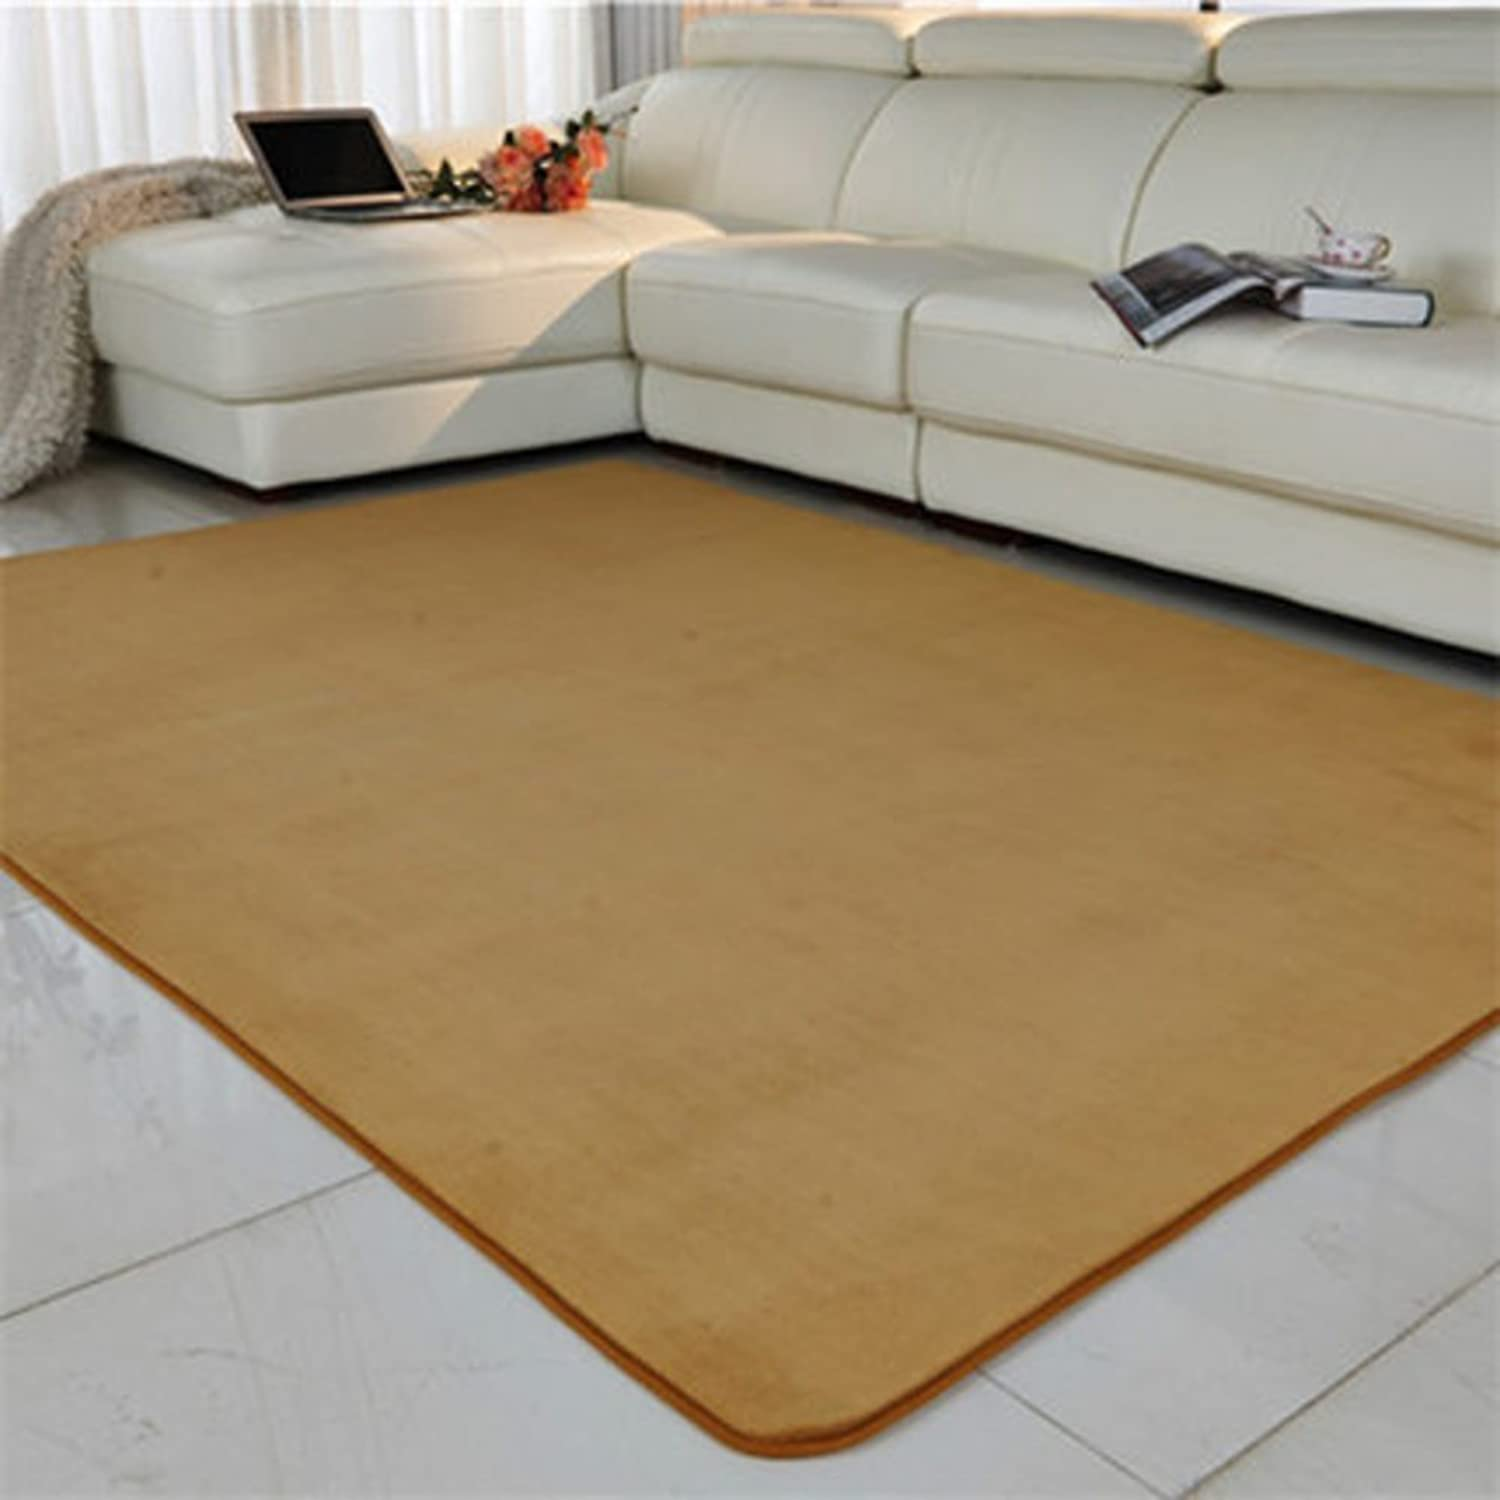 Living Room Bedroom Carpet Bathroom Mat Restroom,Absorbent, Slip Mats Living Room Bedroom Carpet-E 160x200cm(63x79inch)